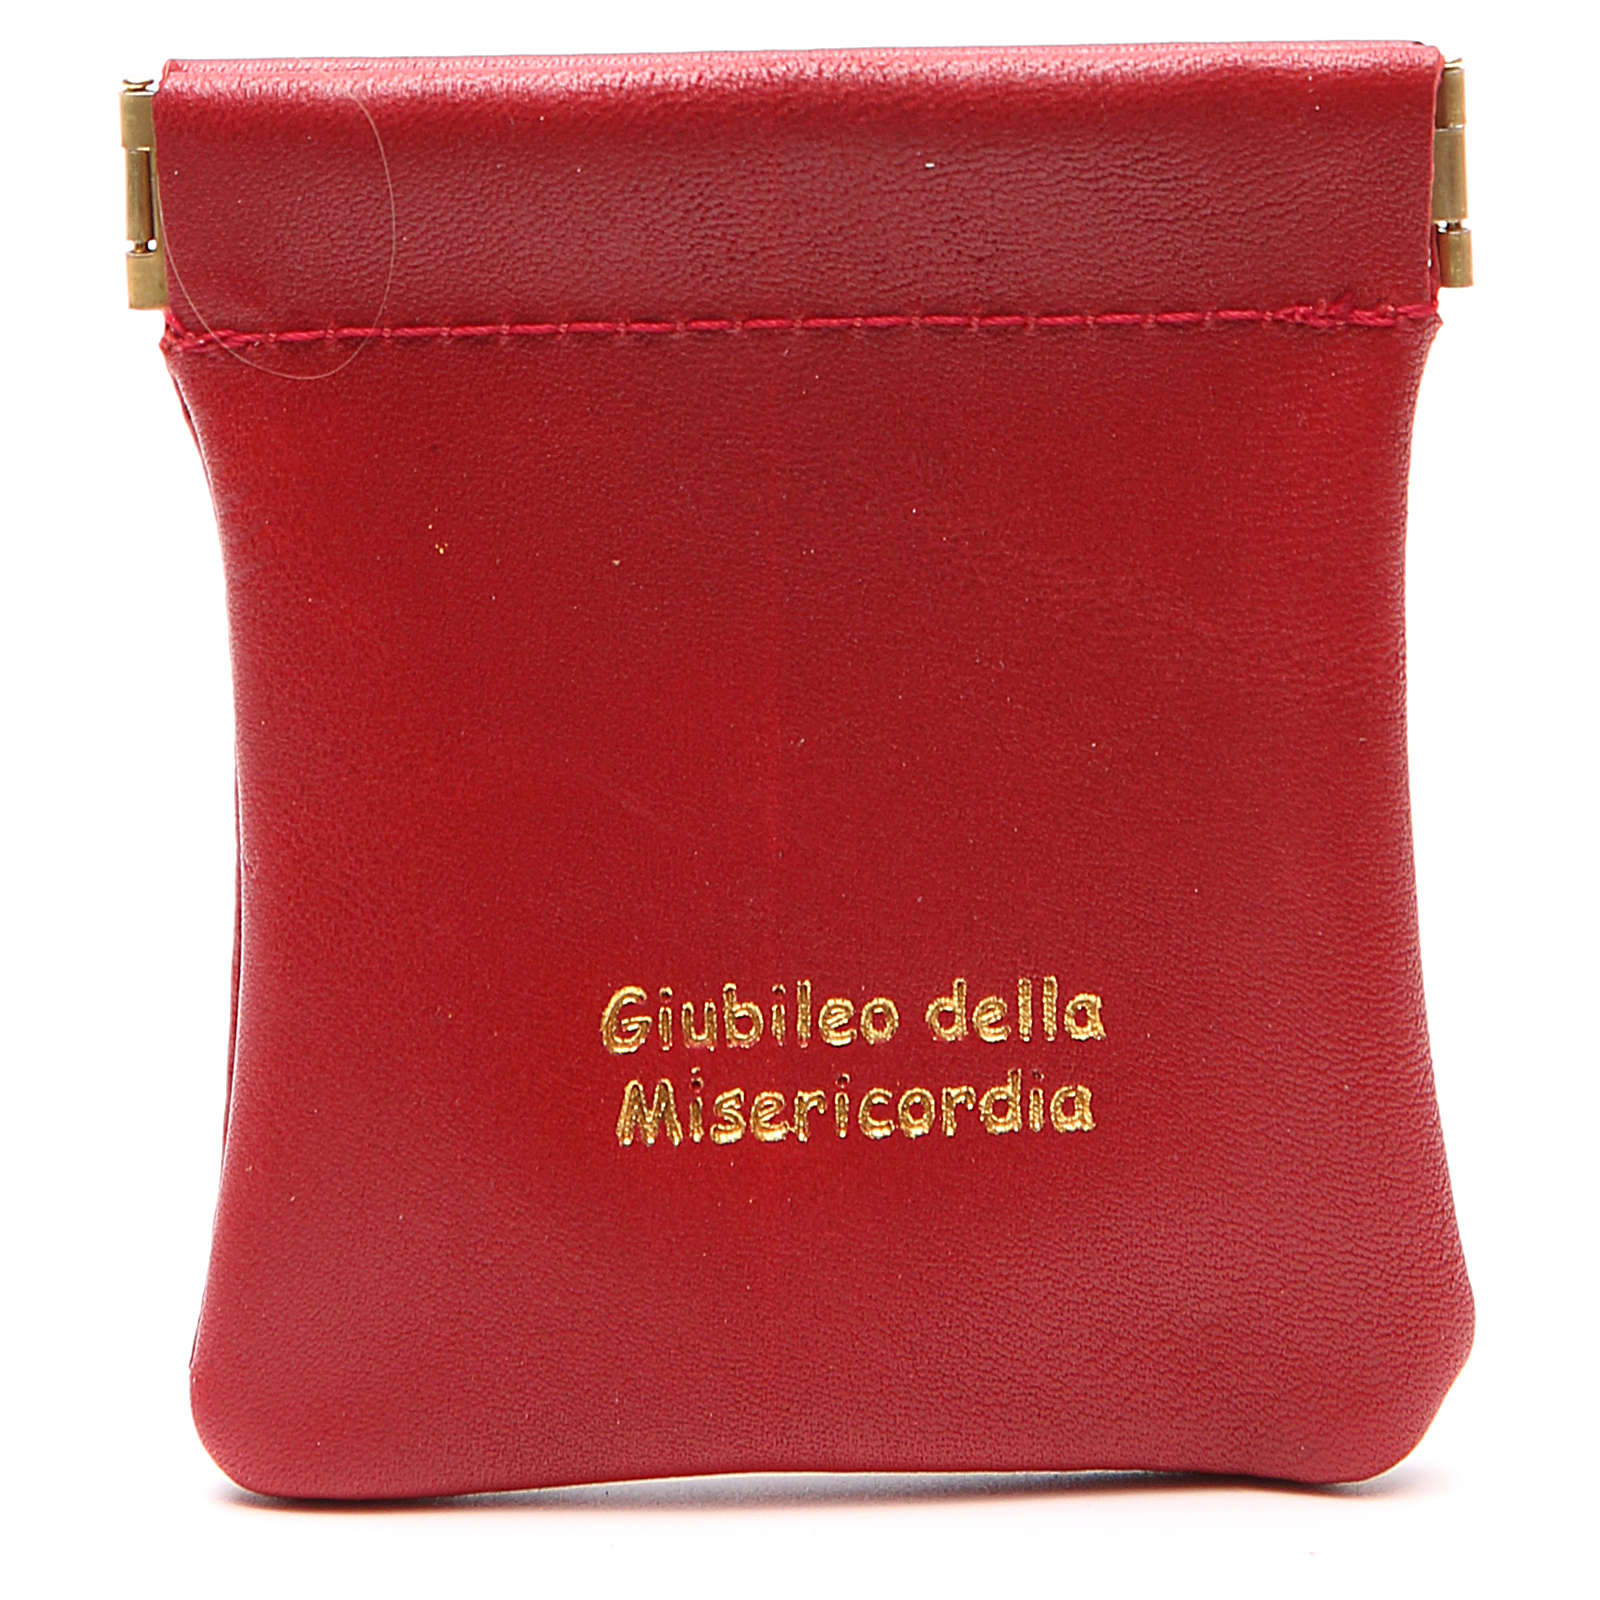 STOCK Rosary bag in red leather Jubilee of Mercy 4